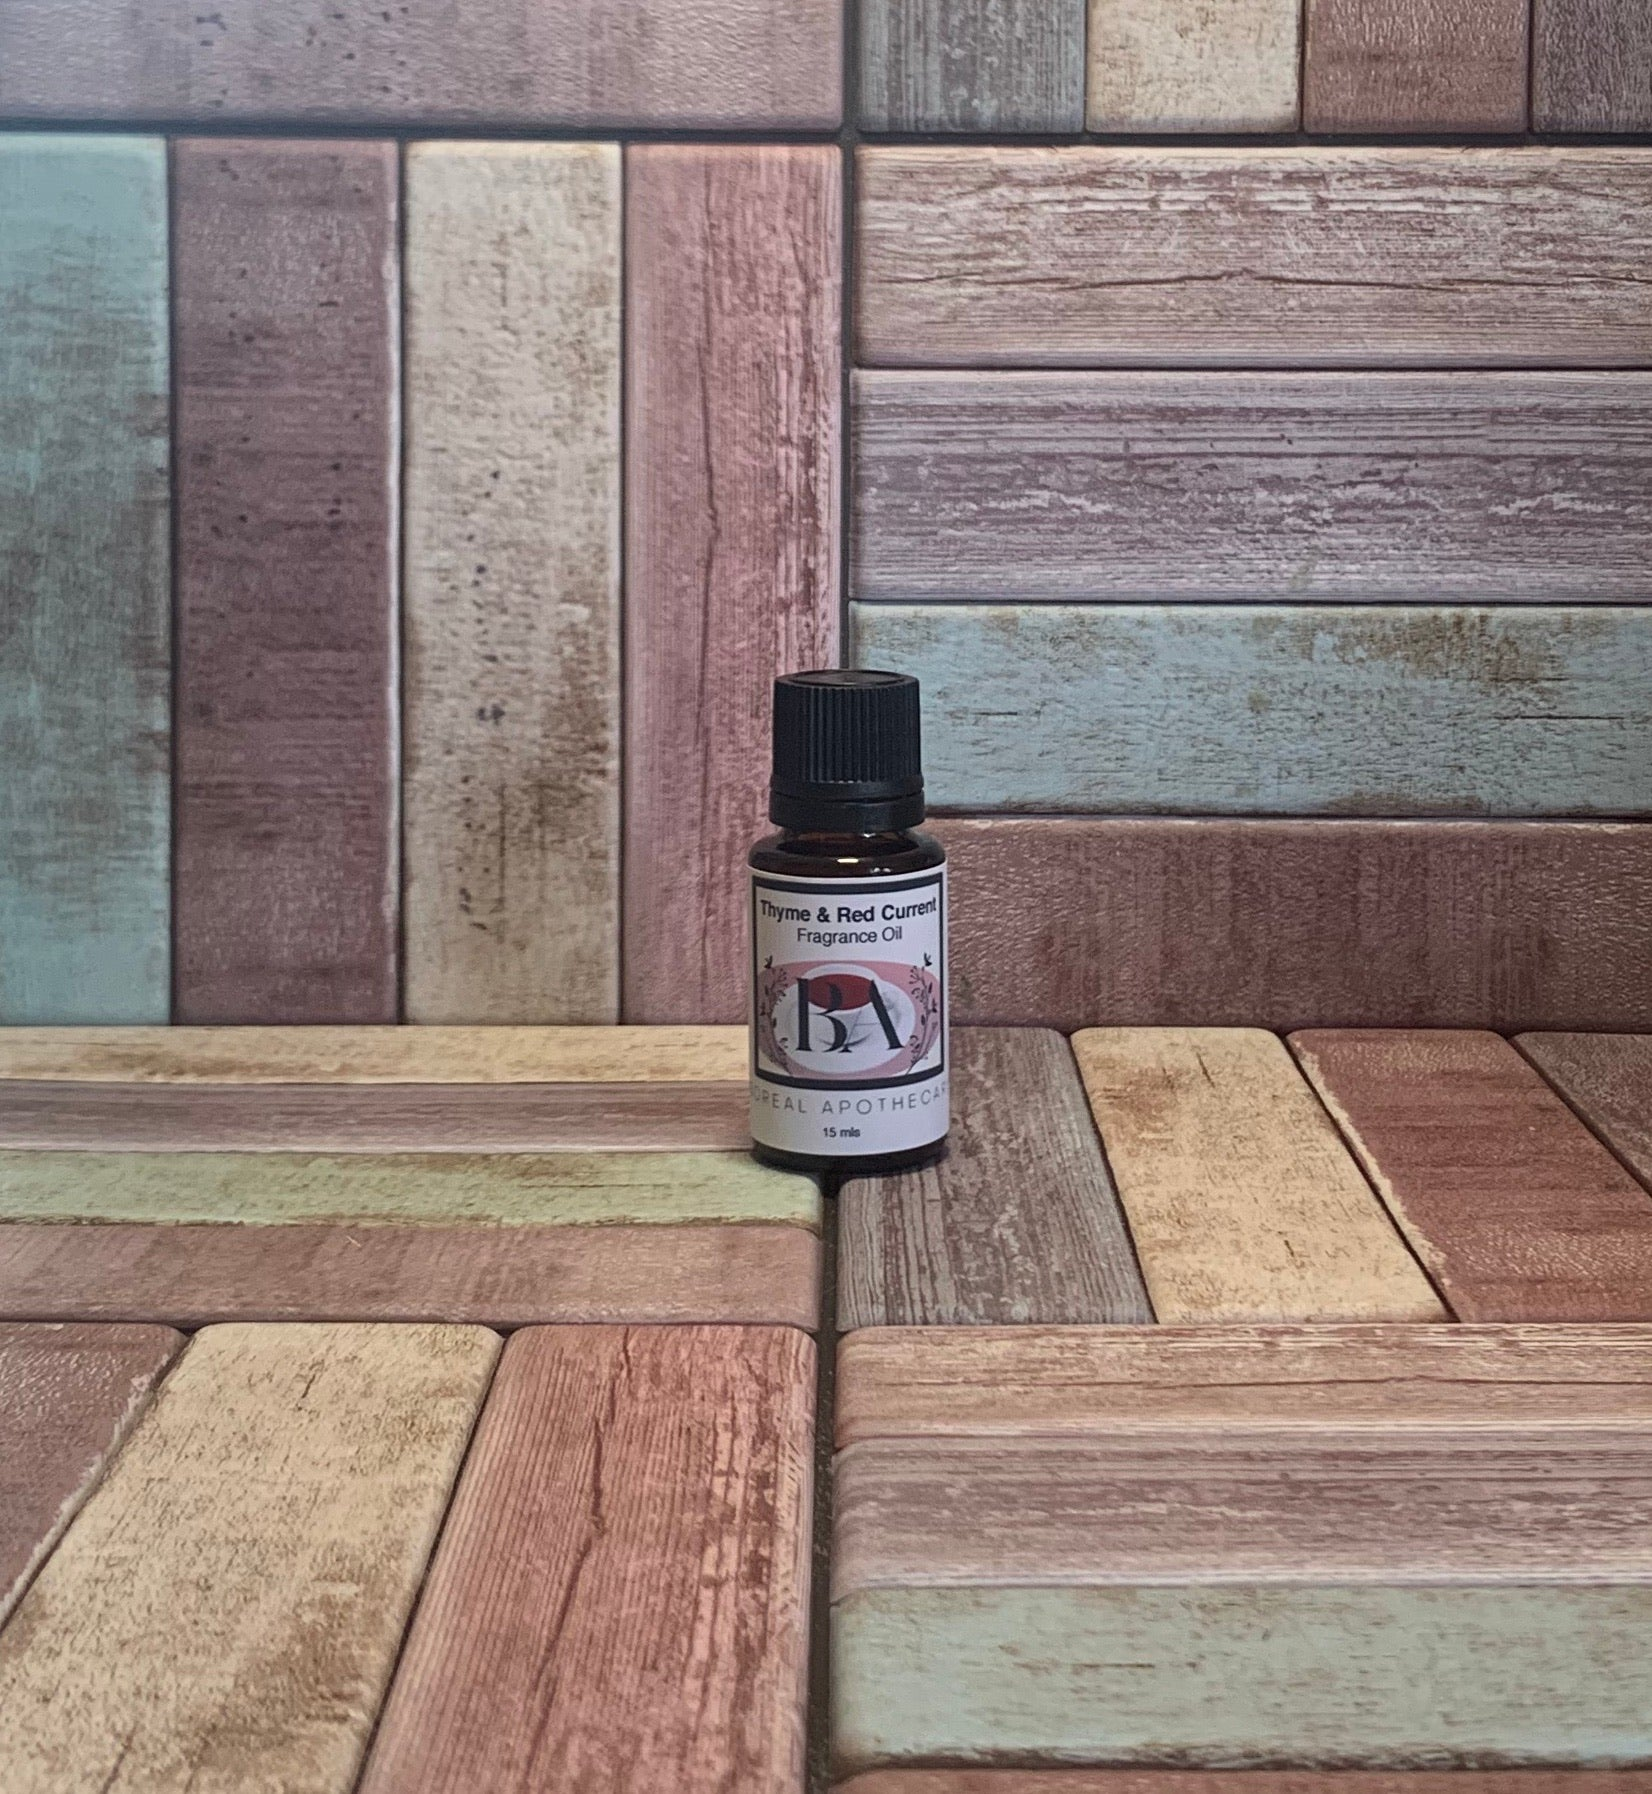 Thyme & Red Current Fragrance Oil